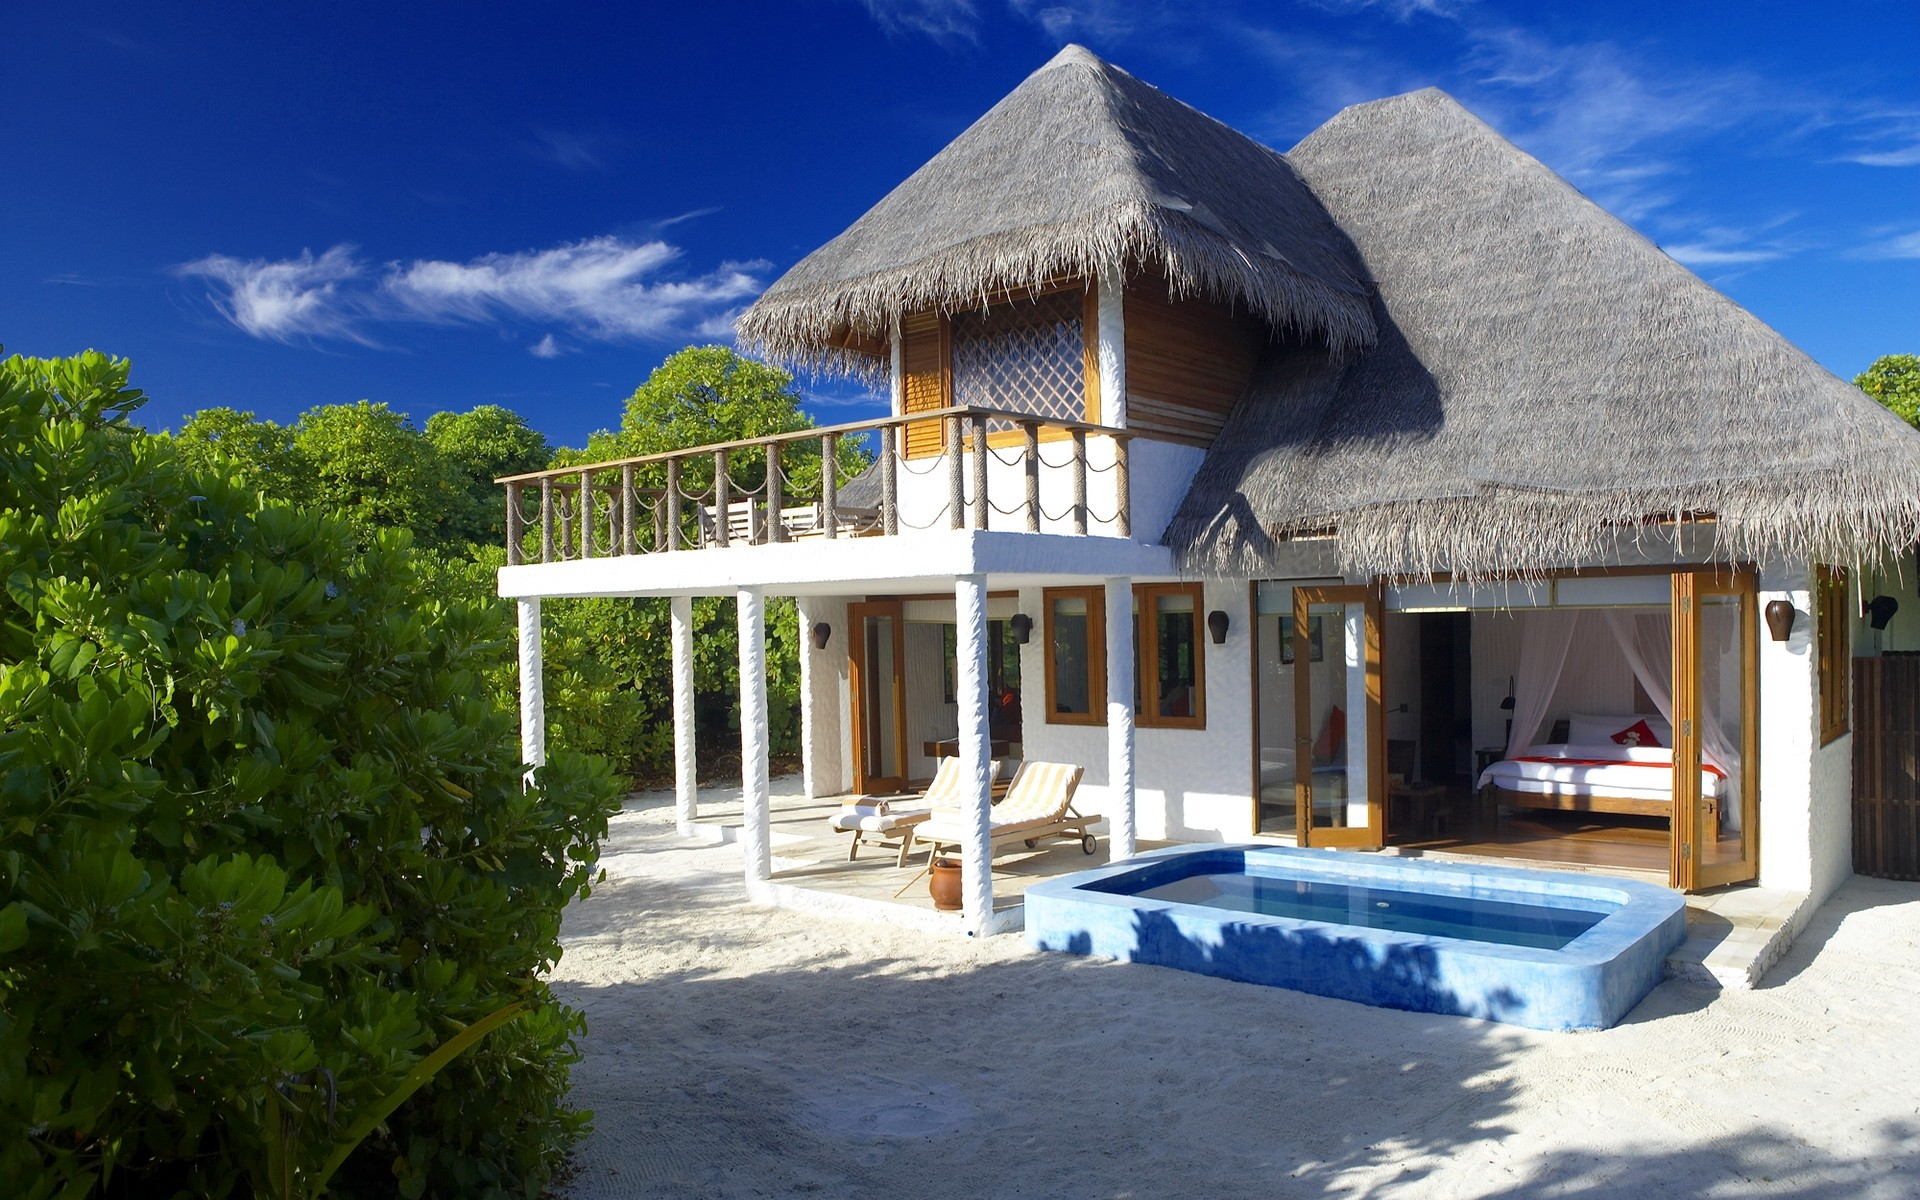 dise o de bungalows hd 1920x1200 imagenes wallpapers